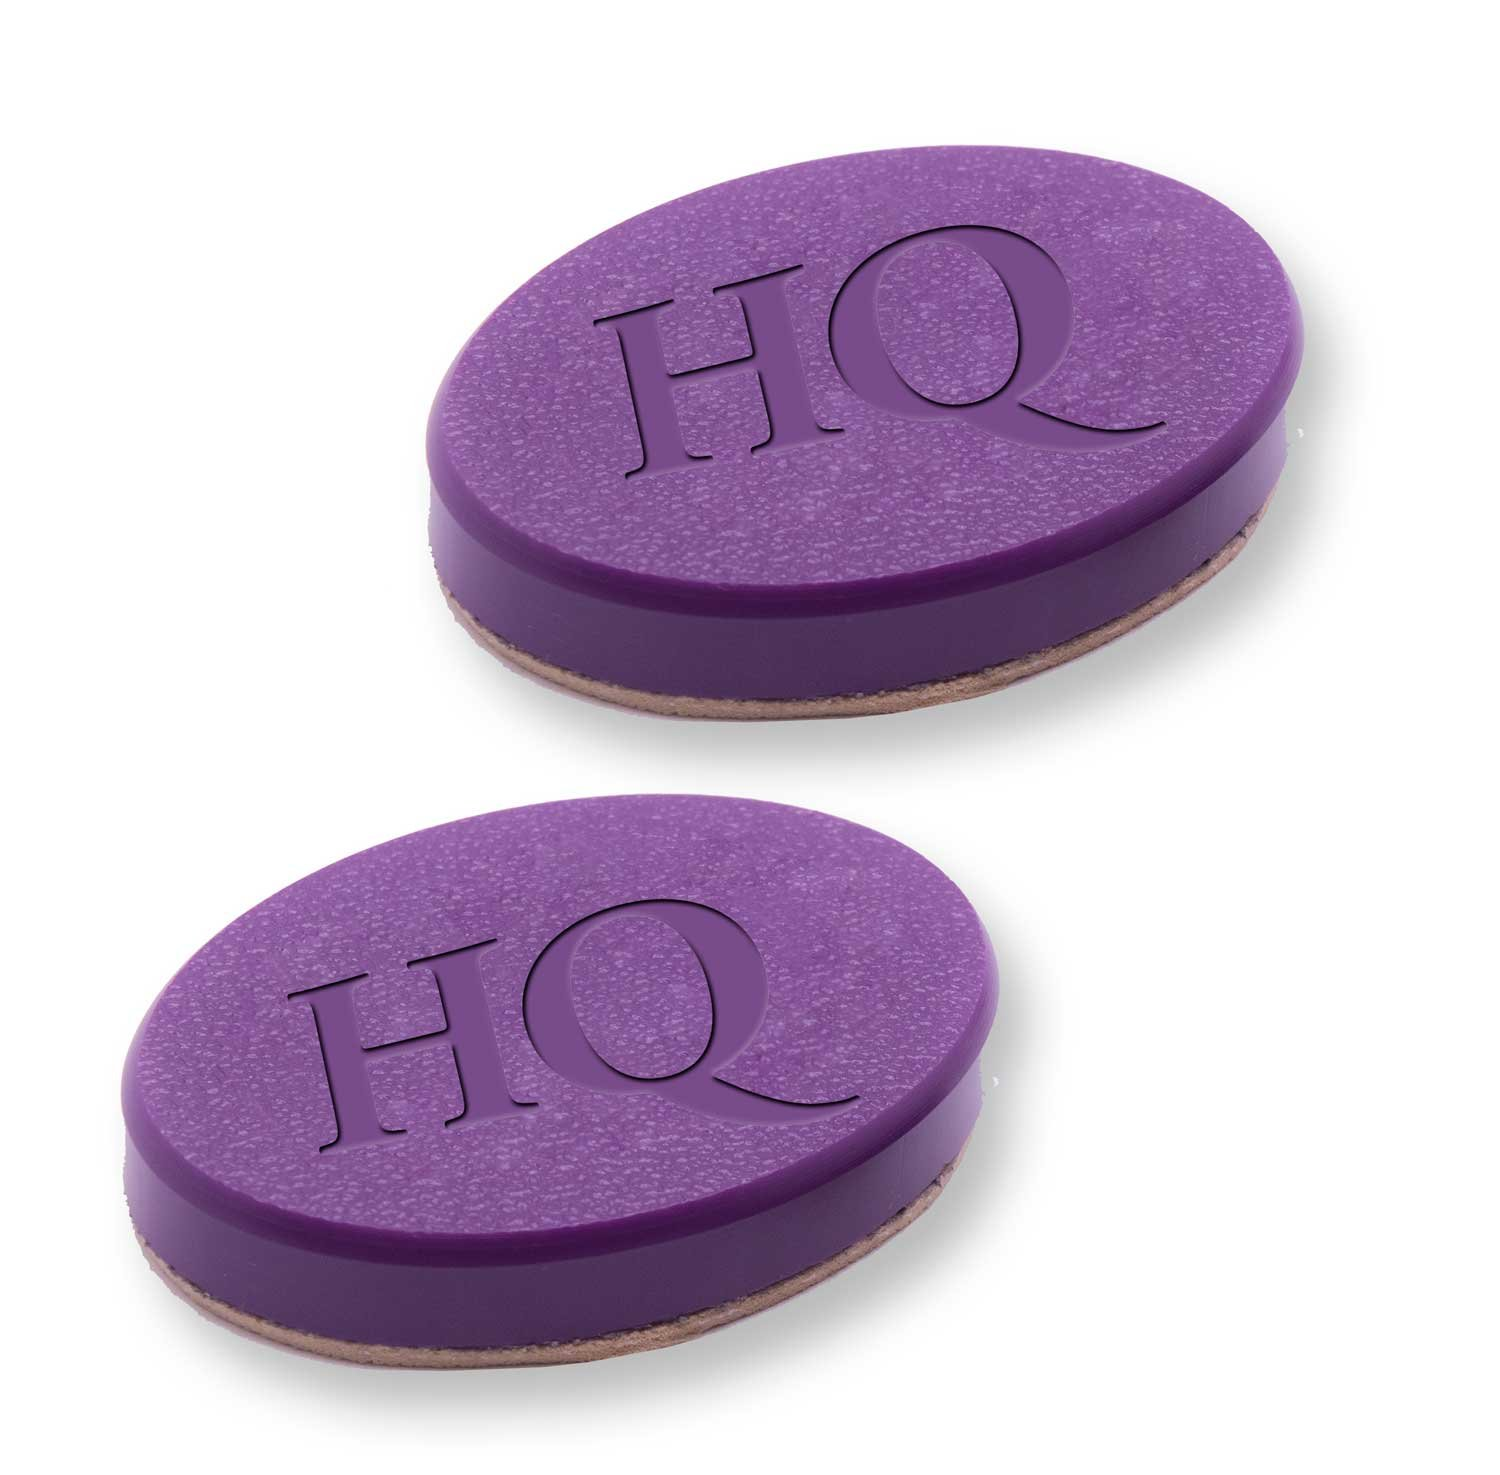 HQ Sweet Spots Set of 2